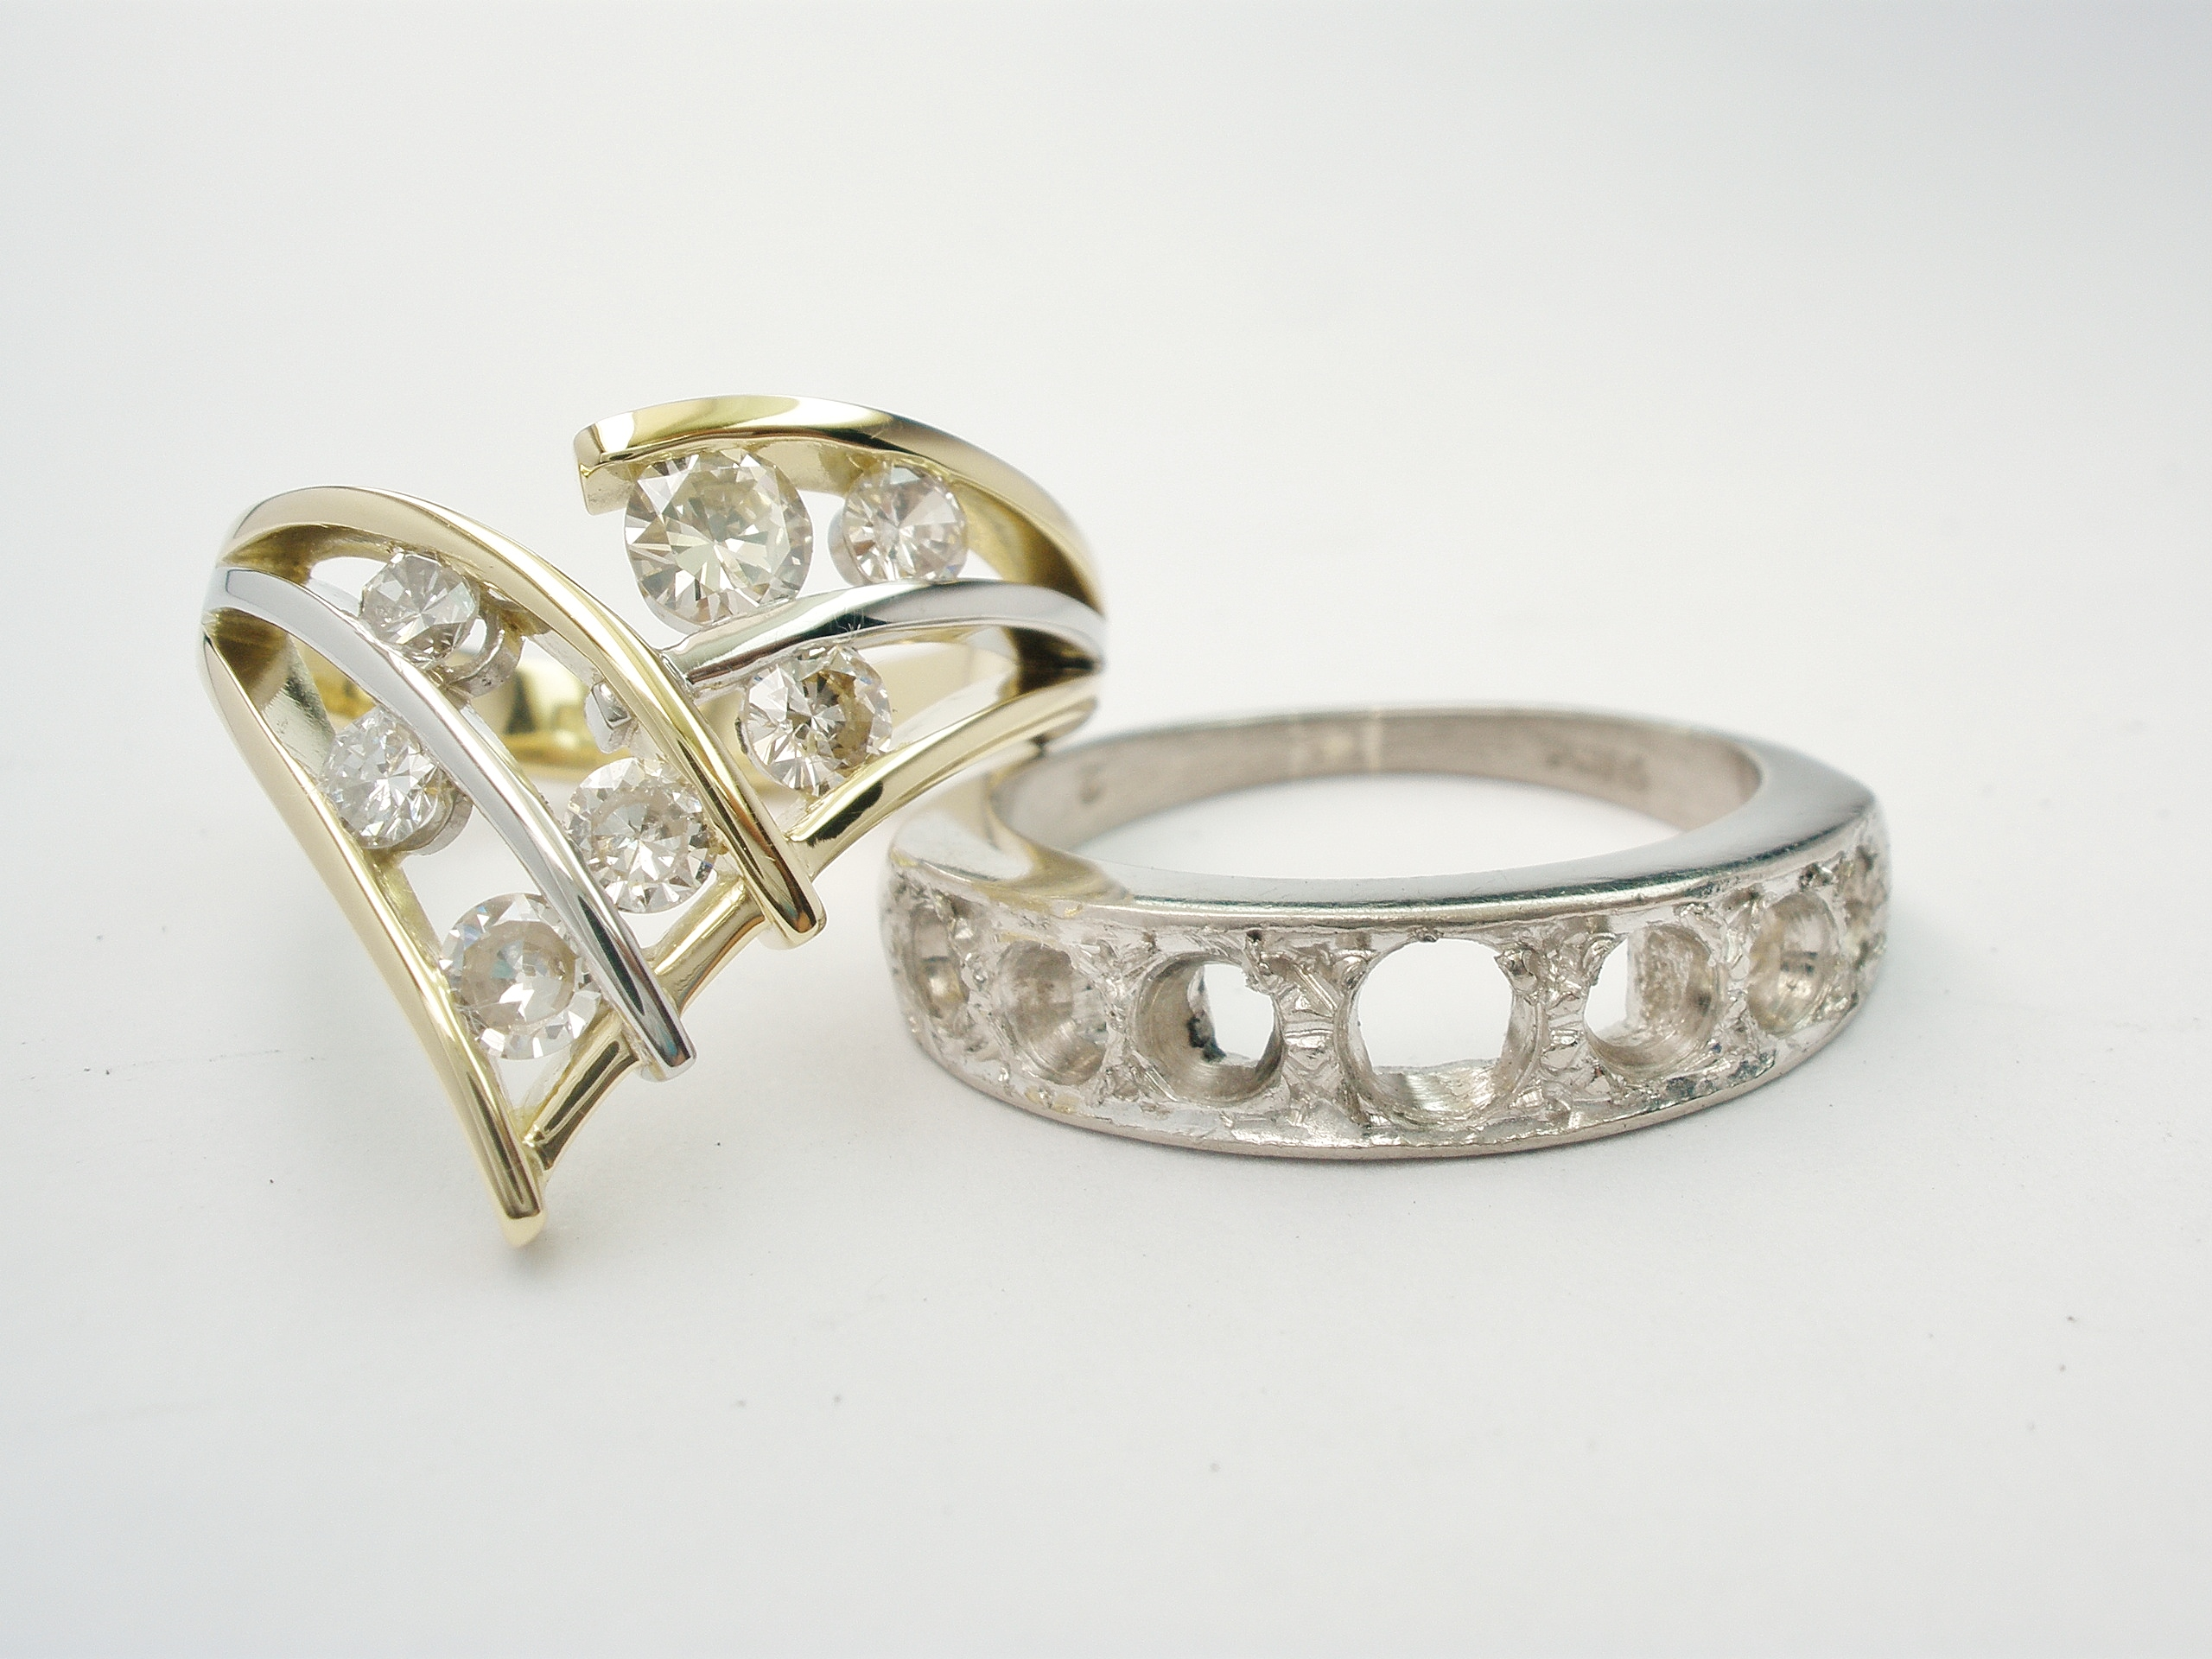 18ct. yellow gold & platinum 7 stone diamond wishbone style ring remodelled from original 7 stone bead set eternity ring.